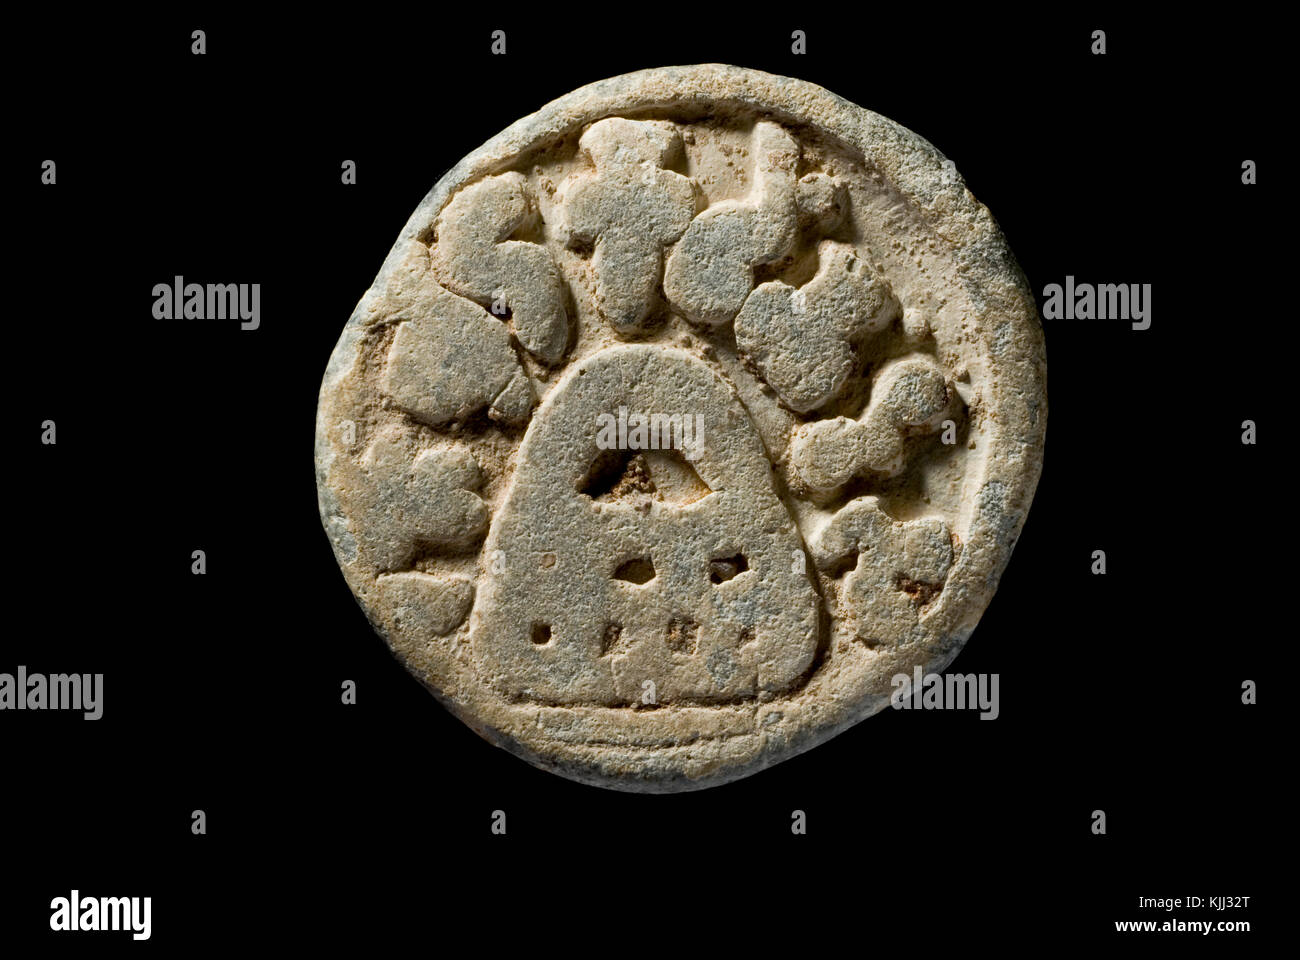 Ancient Indian Coin - Stock Image